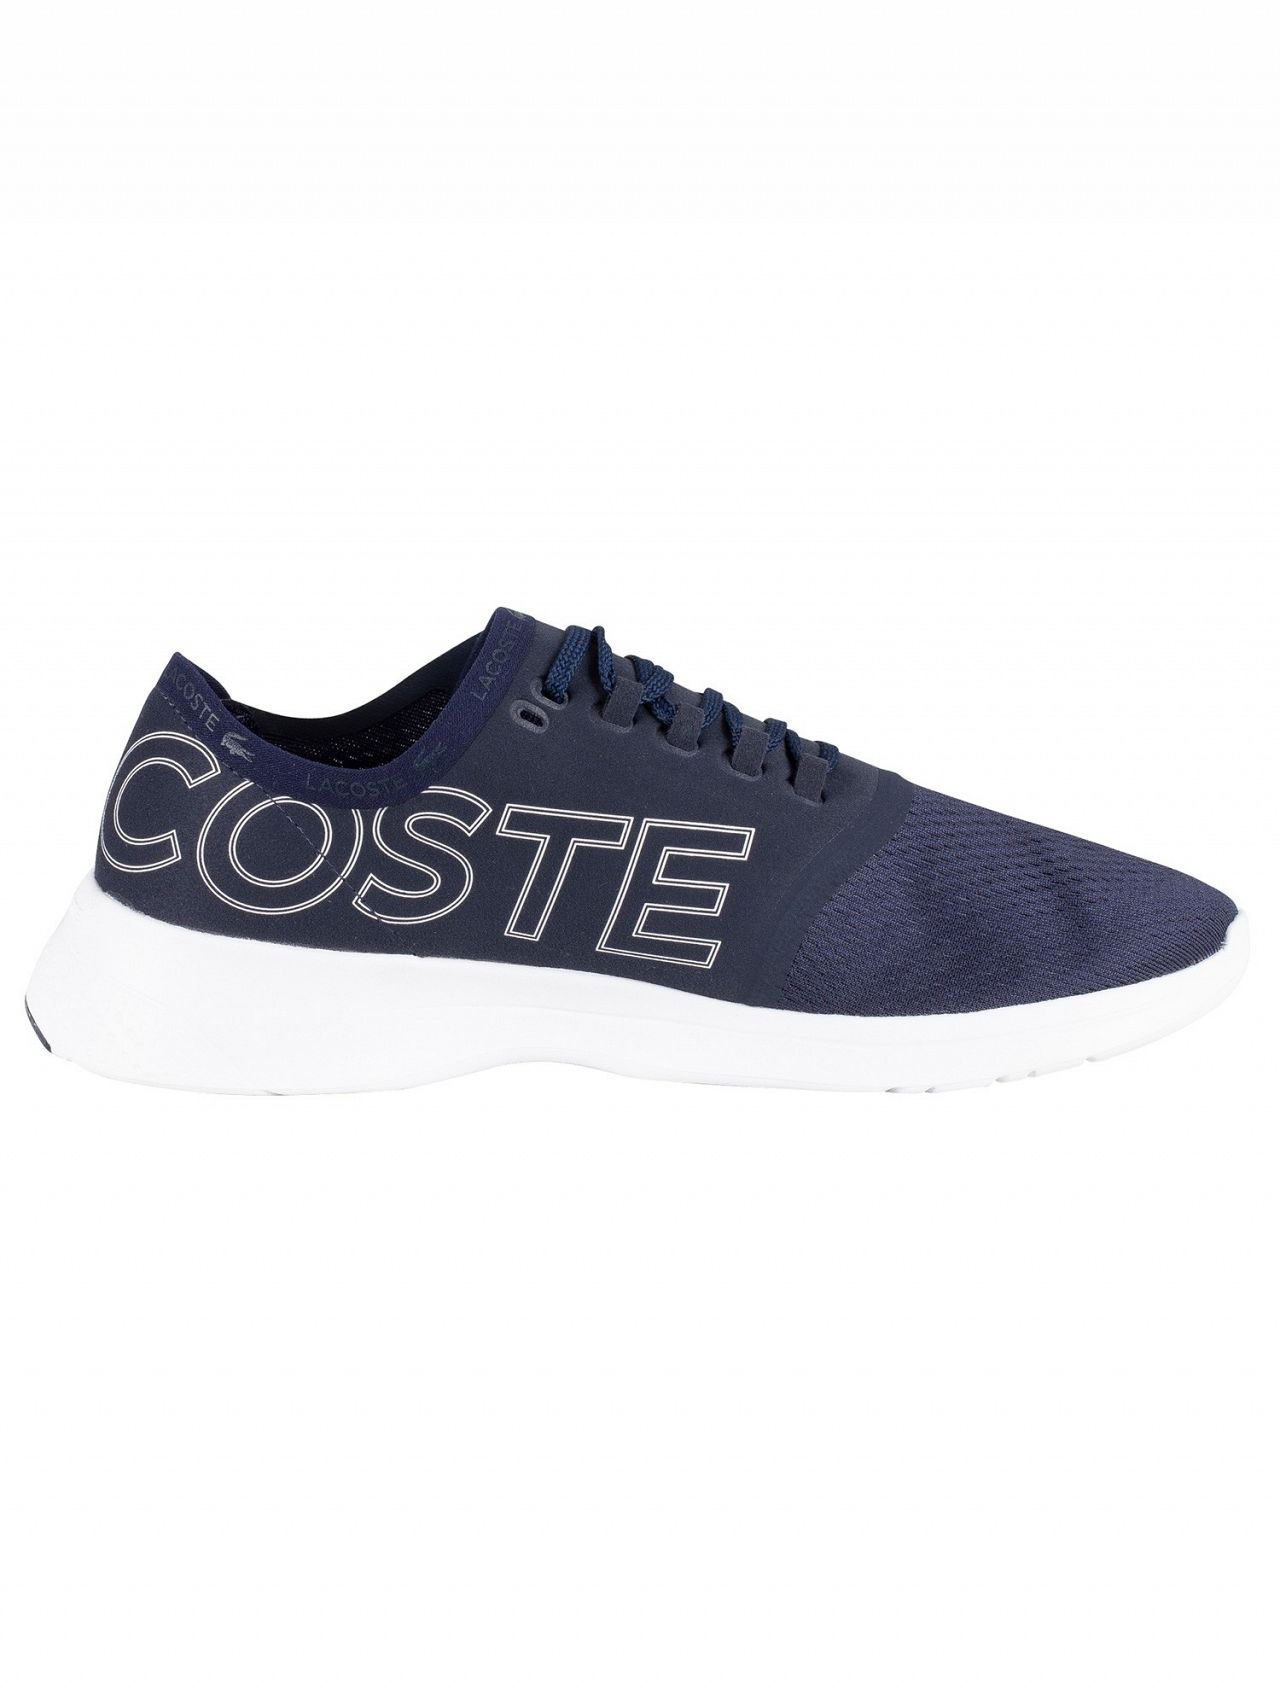 74664affa2bdd Lacoste Navy/White LT Fit 119 1 Textile Trainers